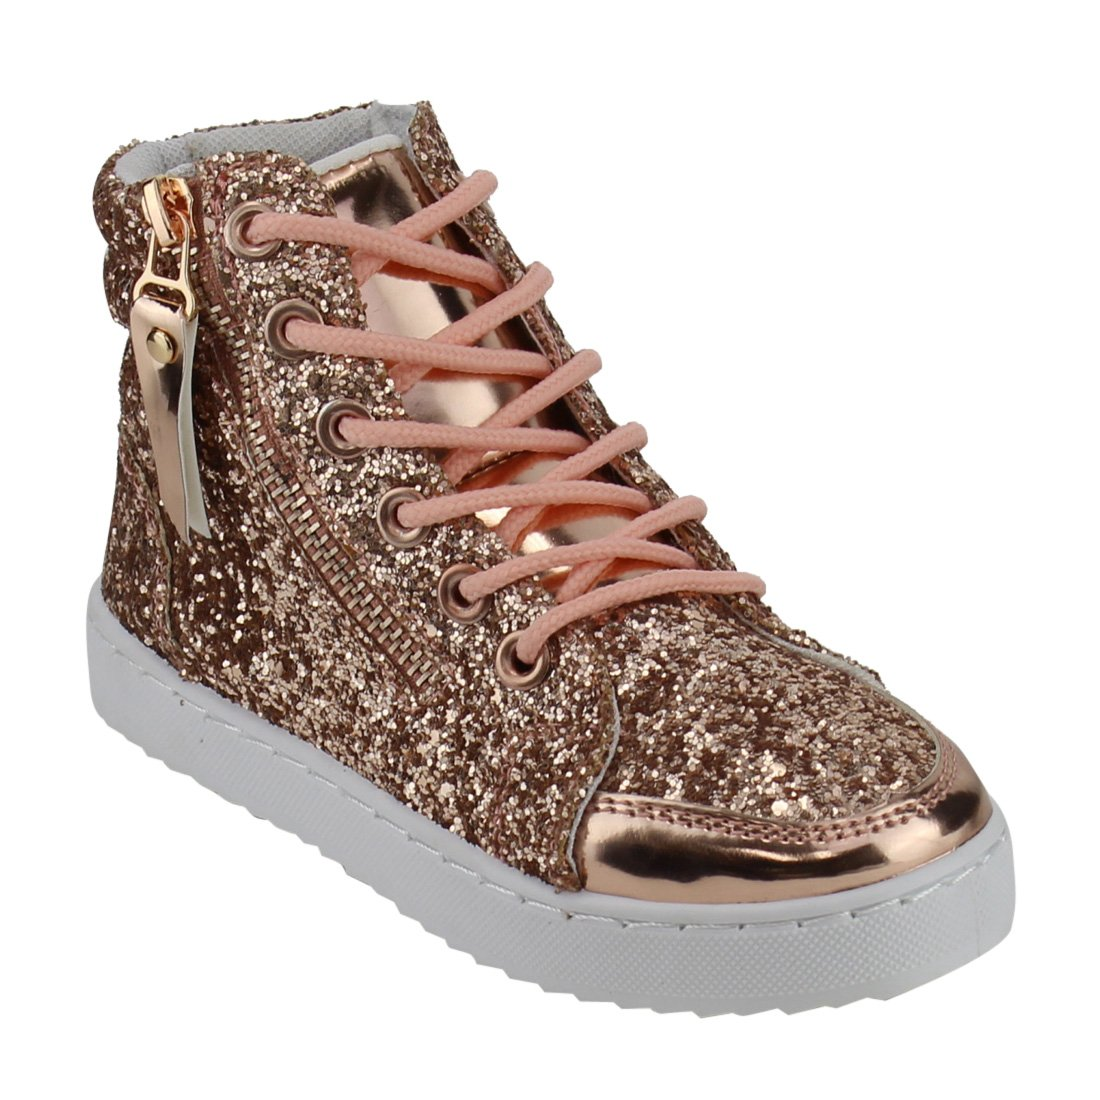 Link Ultra-69K Girls Glitter Lace up White Sole Ankle High Top Street Sneakers FP55